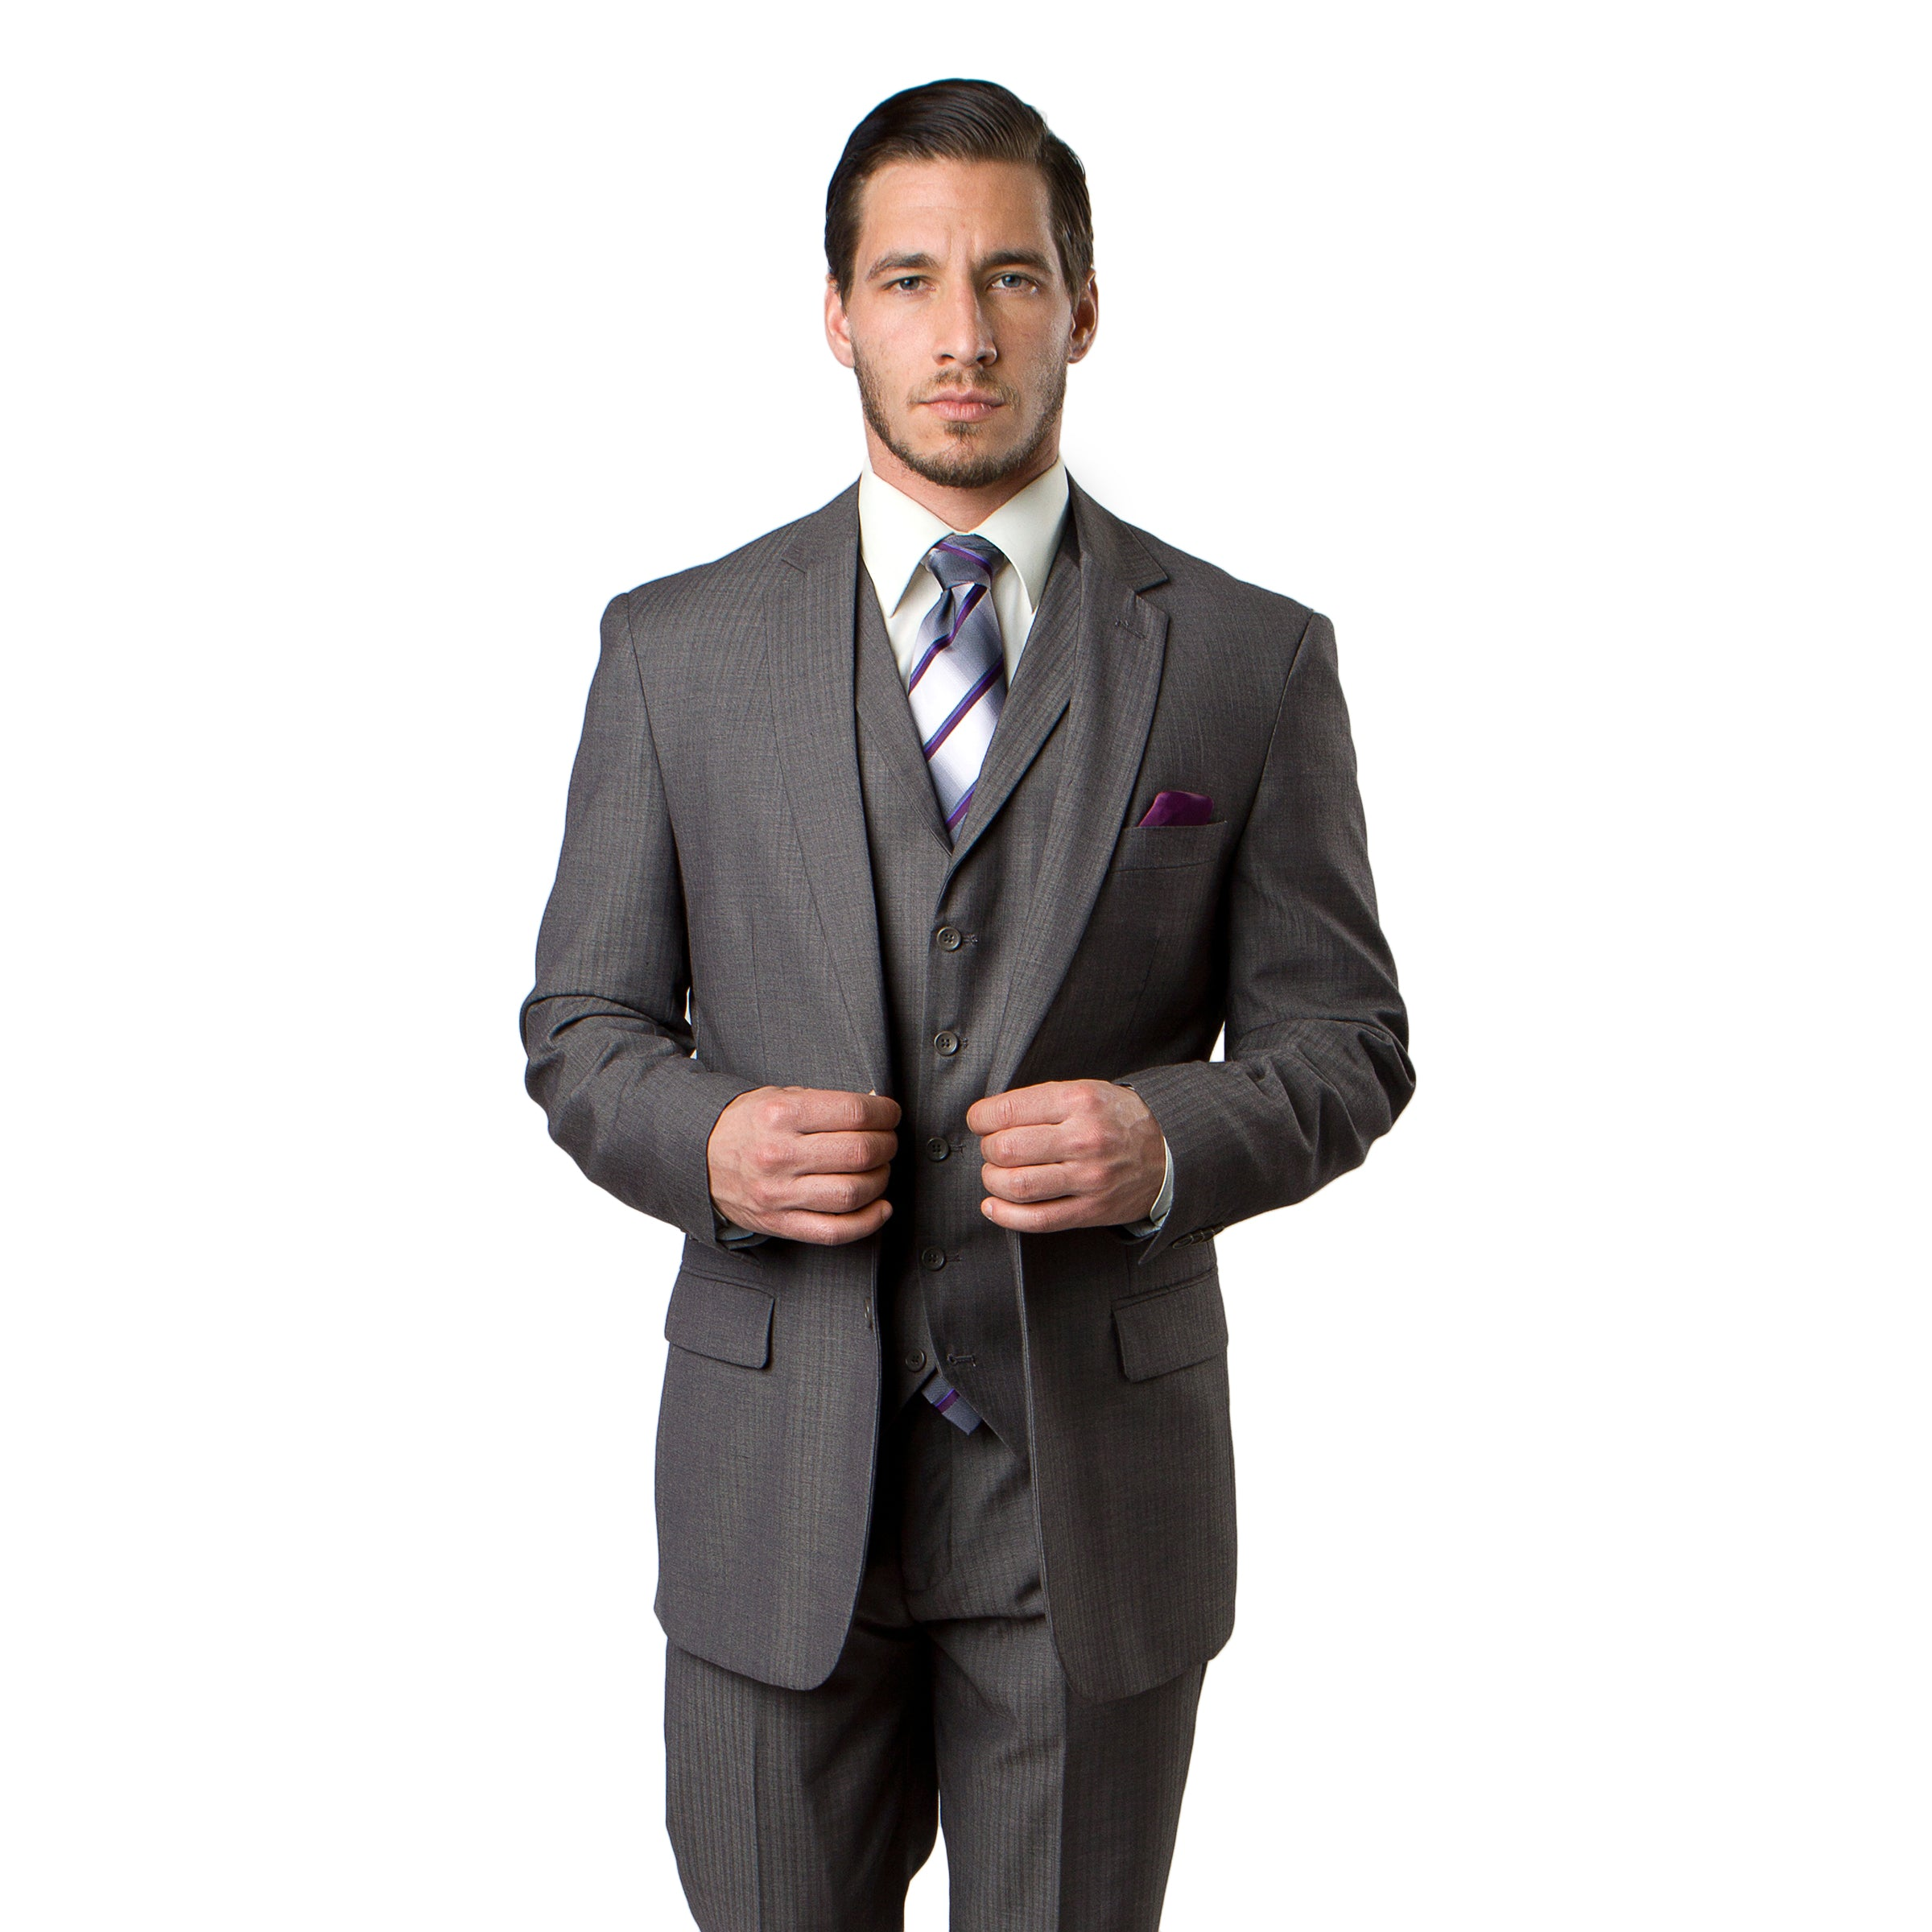 Grey Suit For Men Formal Suits For All Ocassions M230-04